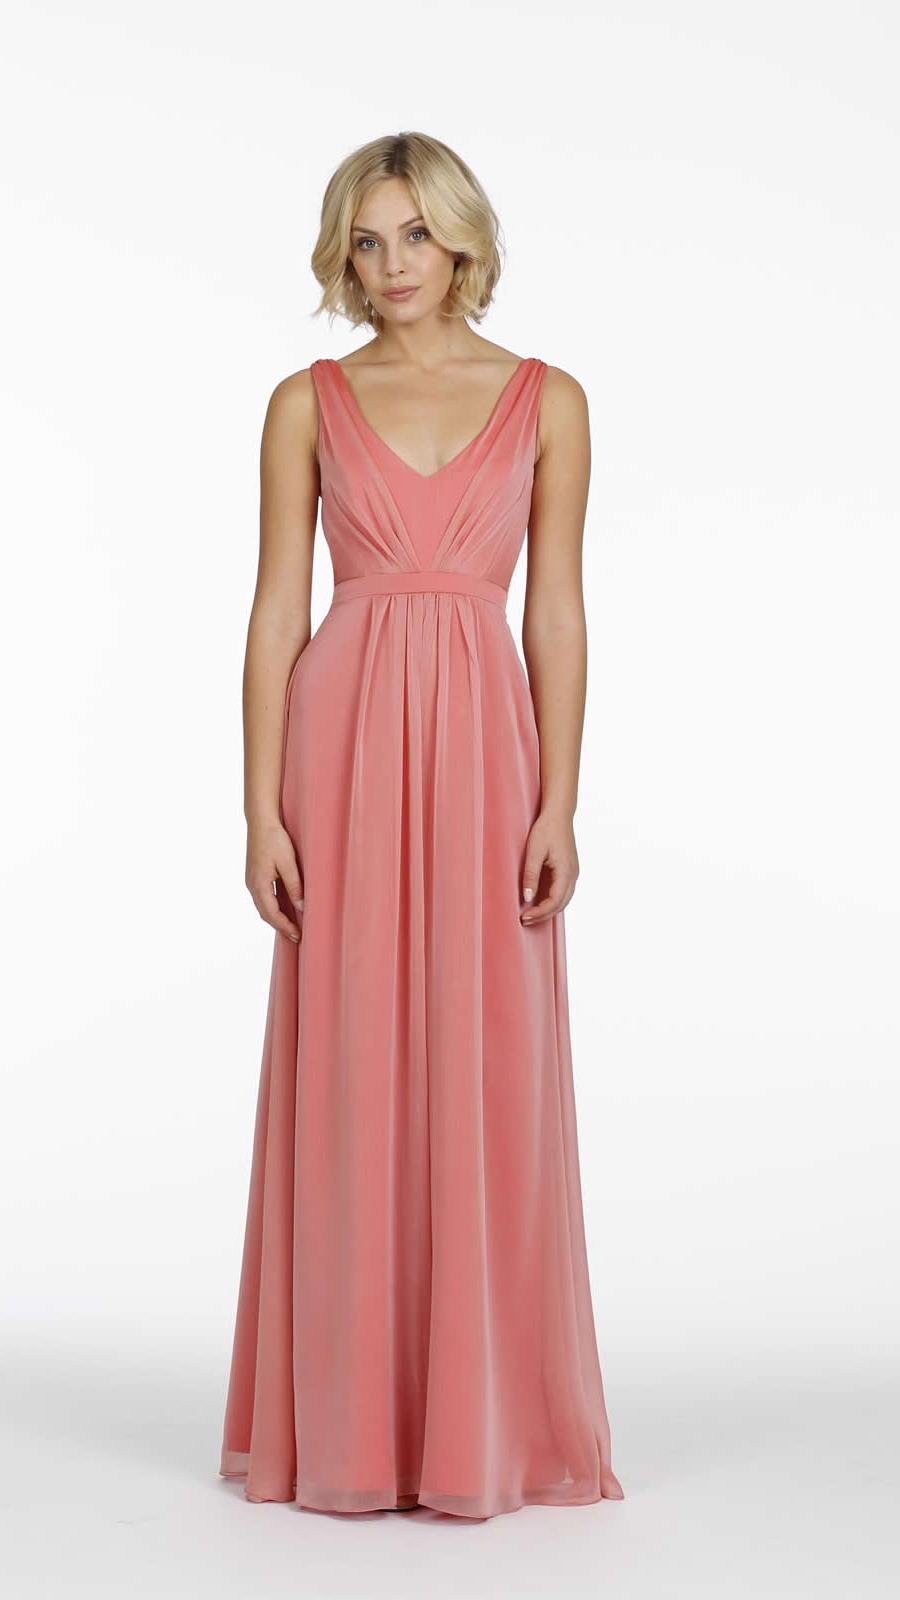 Bridesmaid - Jim Hjelm | Pan Pan Bridal